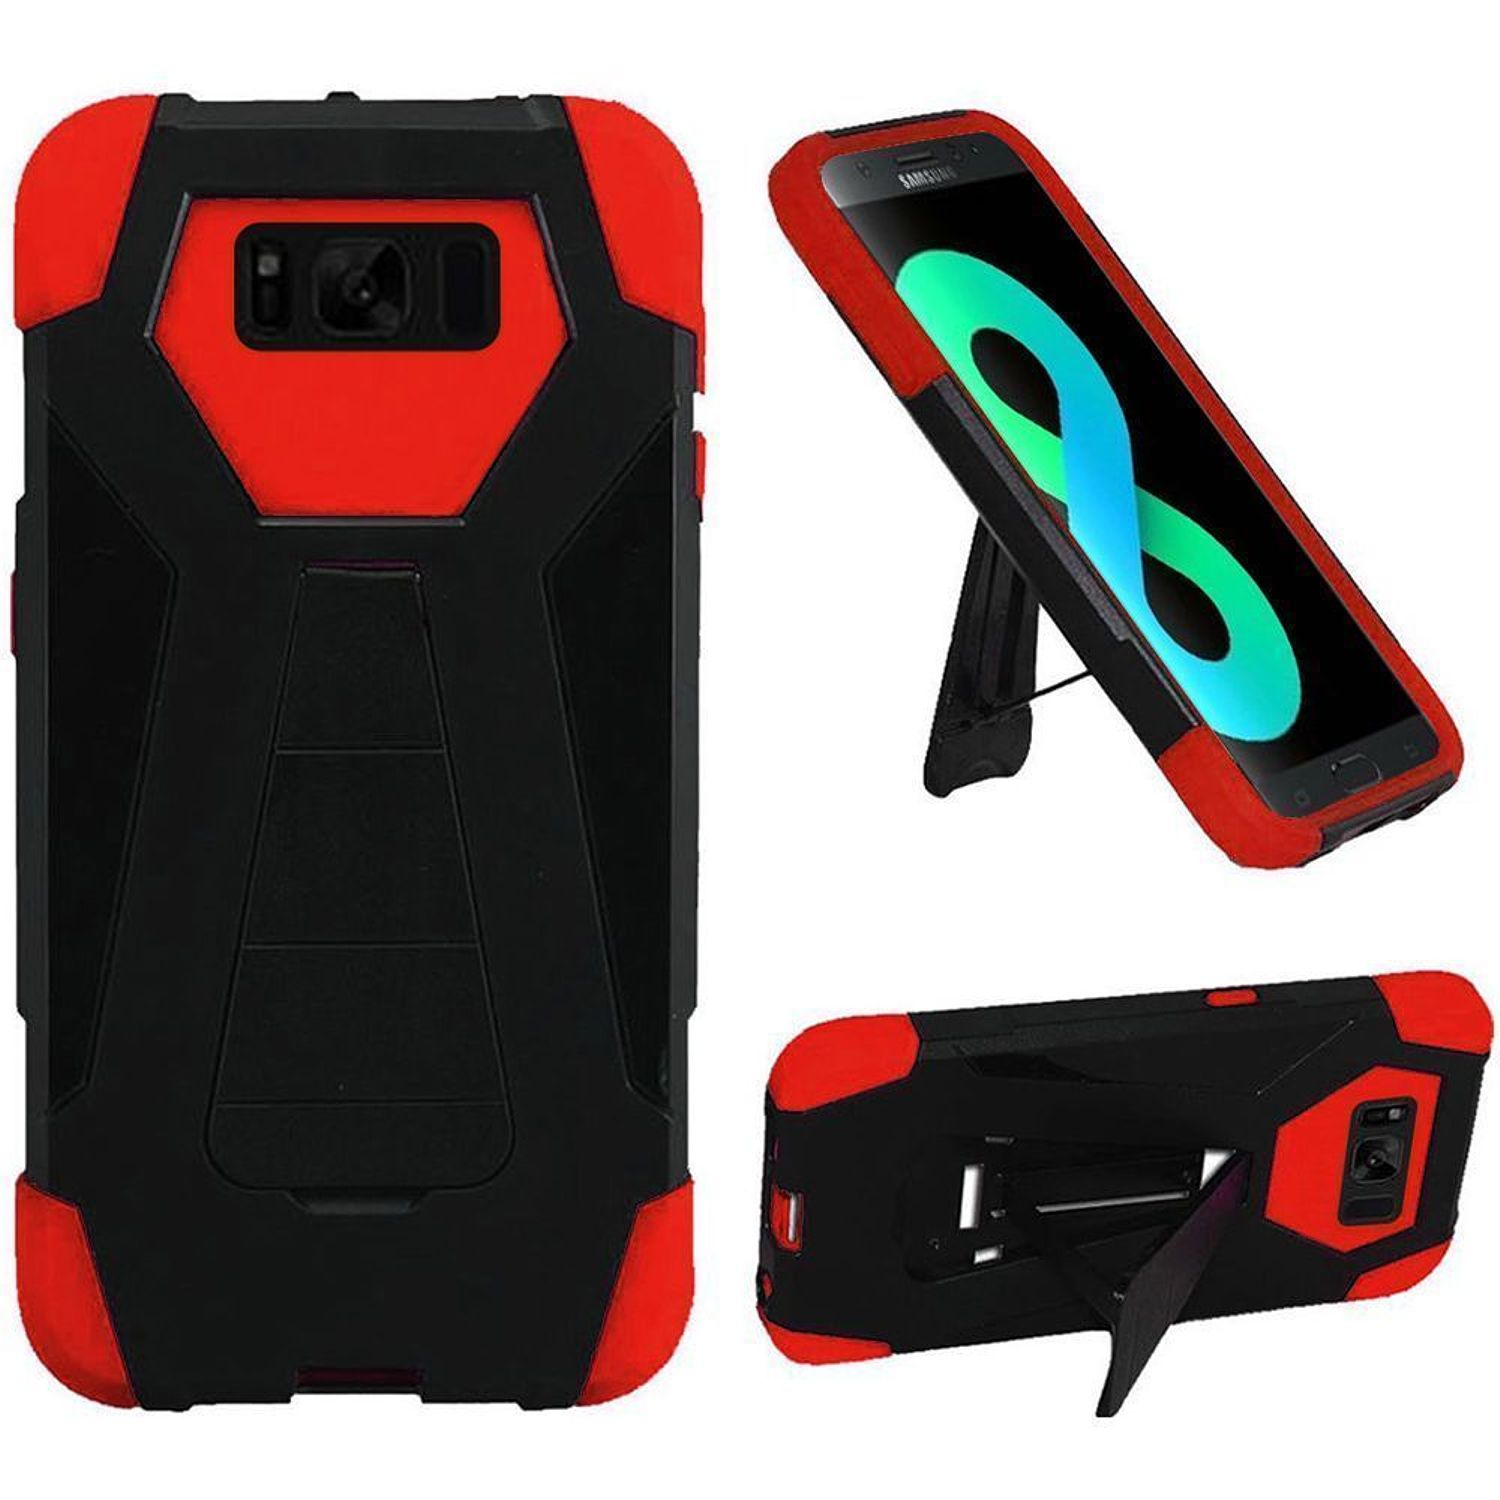 HR Wireless T-Stand Dual Layer Hybrid Stand Rubberized Hard Plastic/Soft Silicone Case Phone Cover For Samsung Galaxy S8 Plus S8+, Black/Red